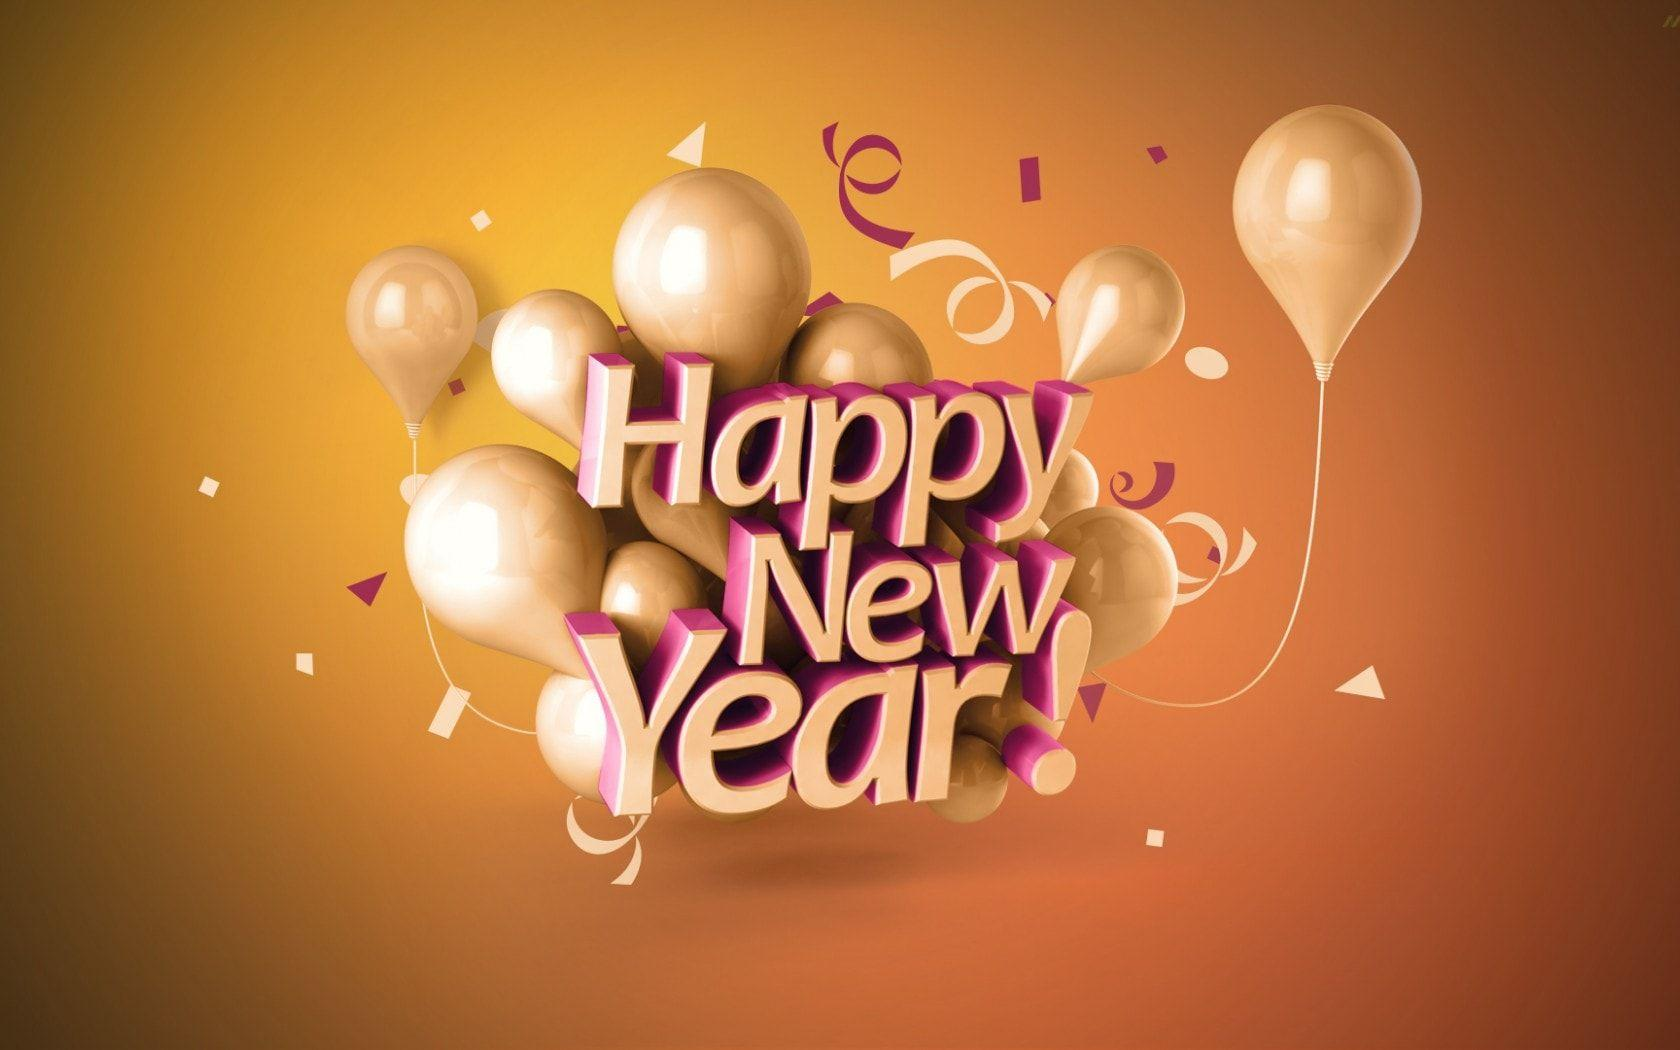 happy new year images wallpapers 2018 ienglish status